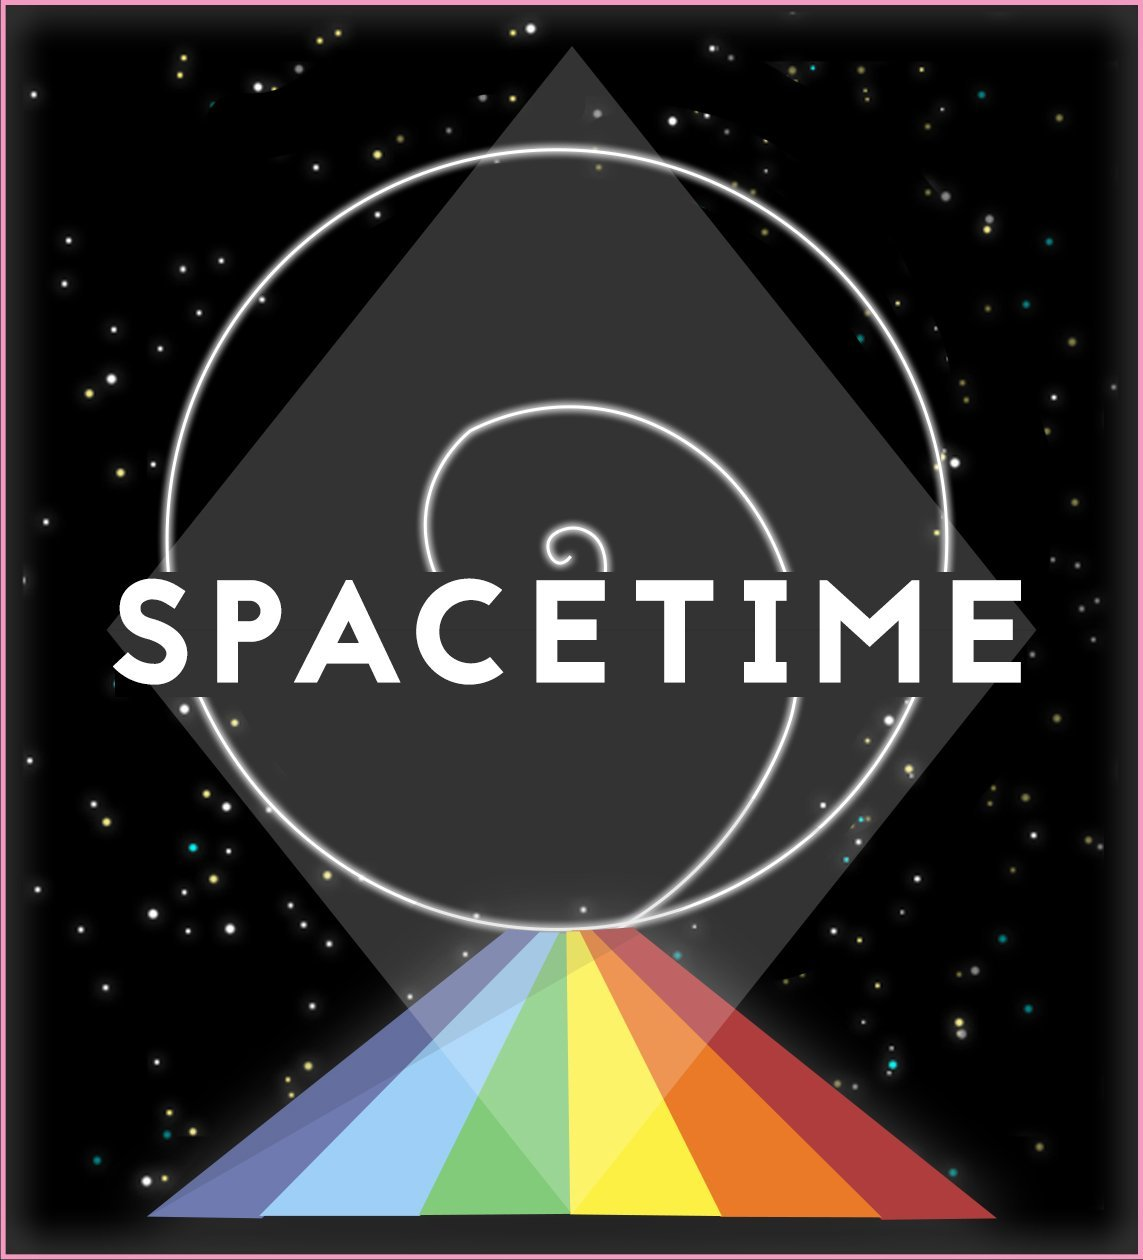 spacetime extra stars